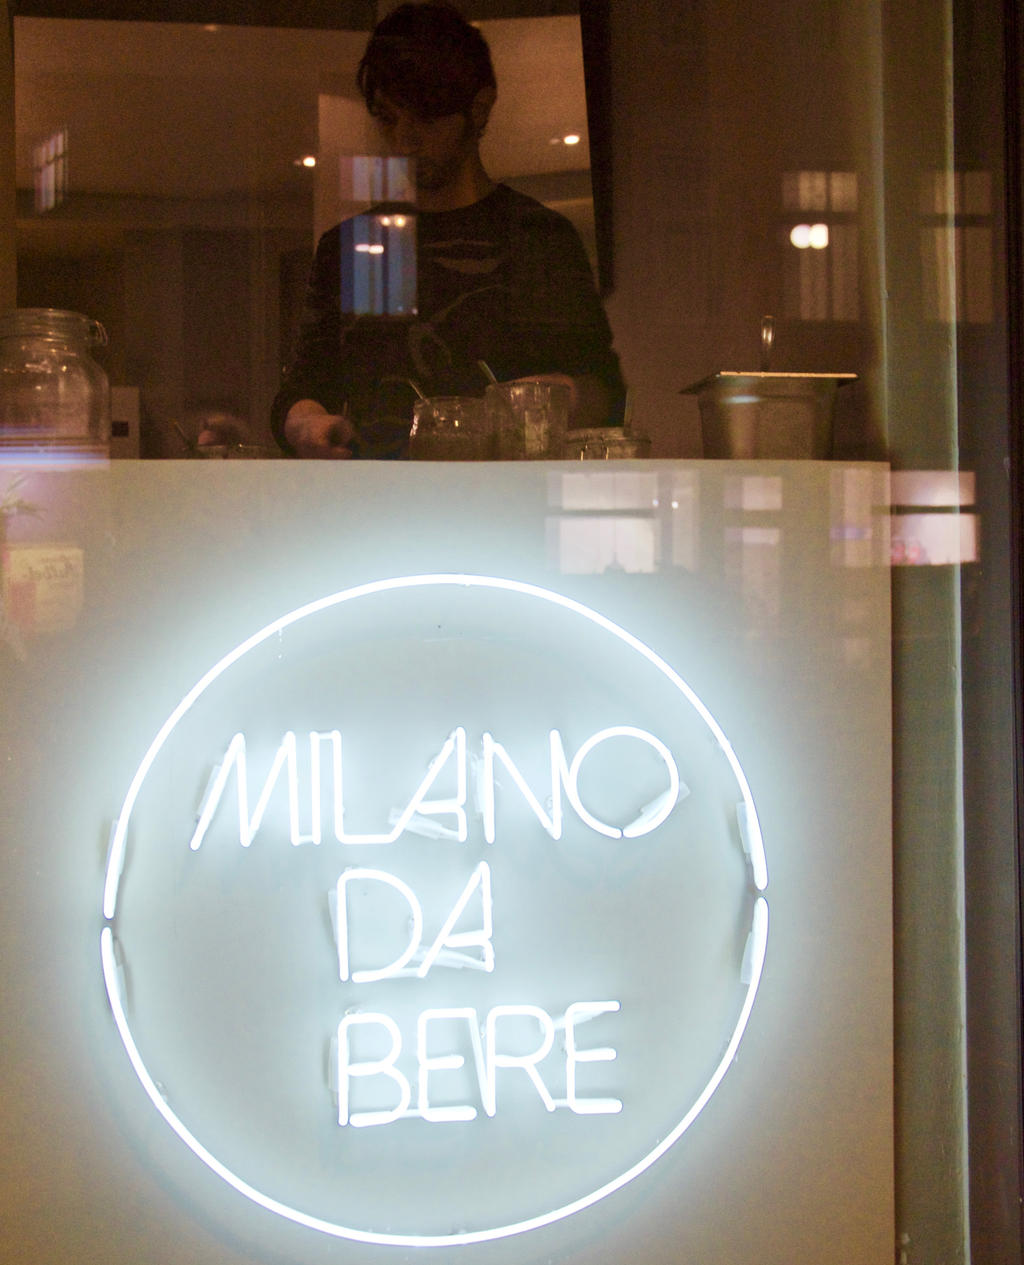 Milano da bere by batsceba on deviantart for Milano da bere locali